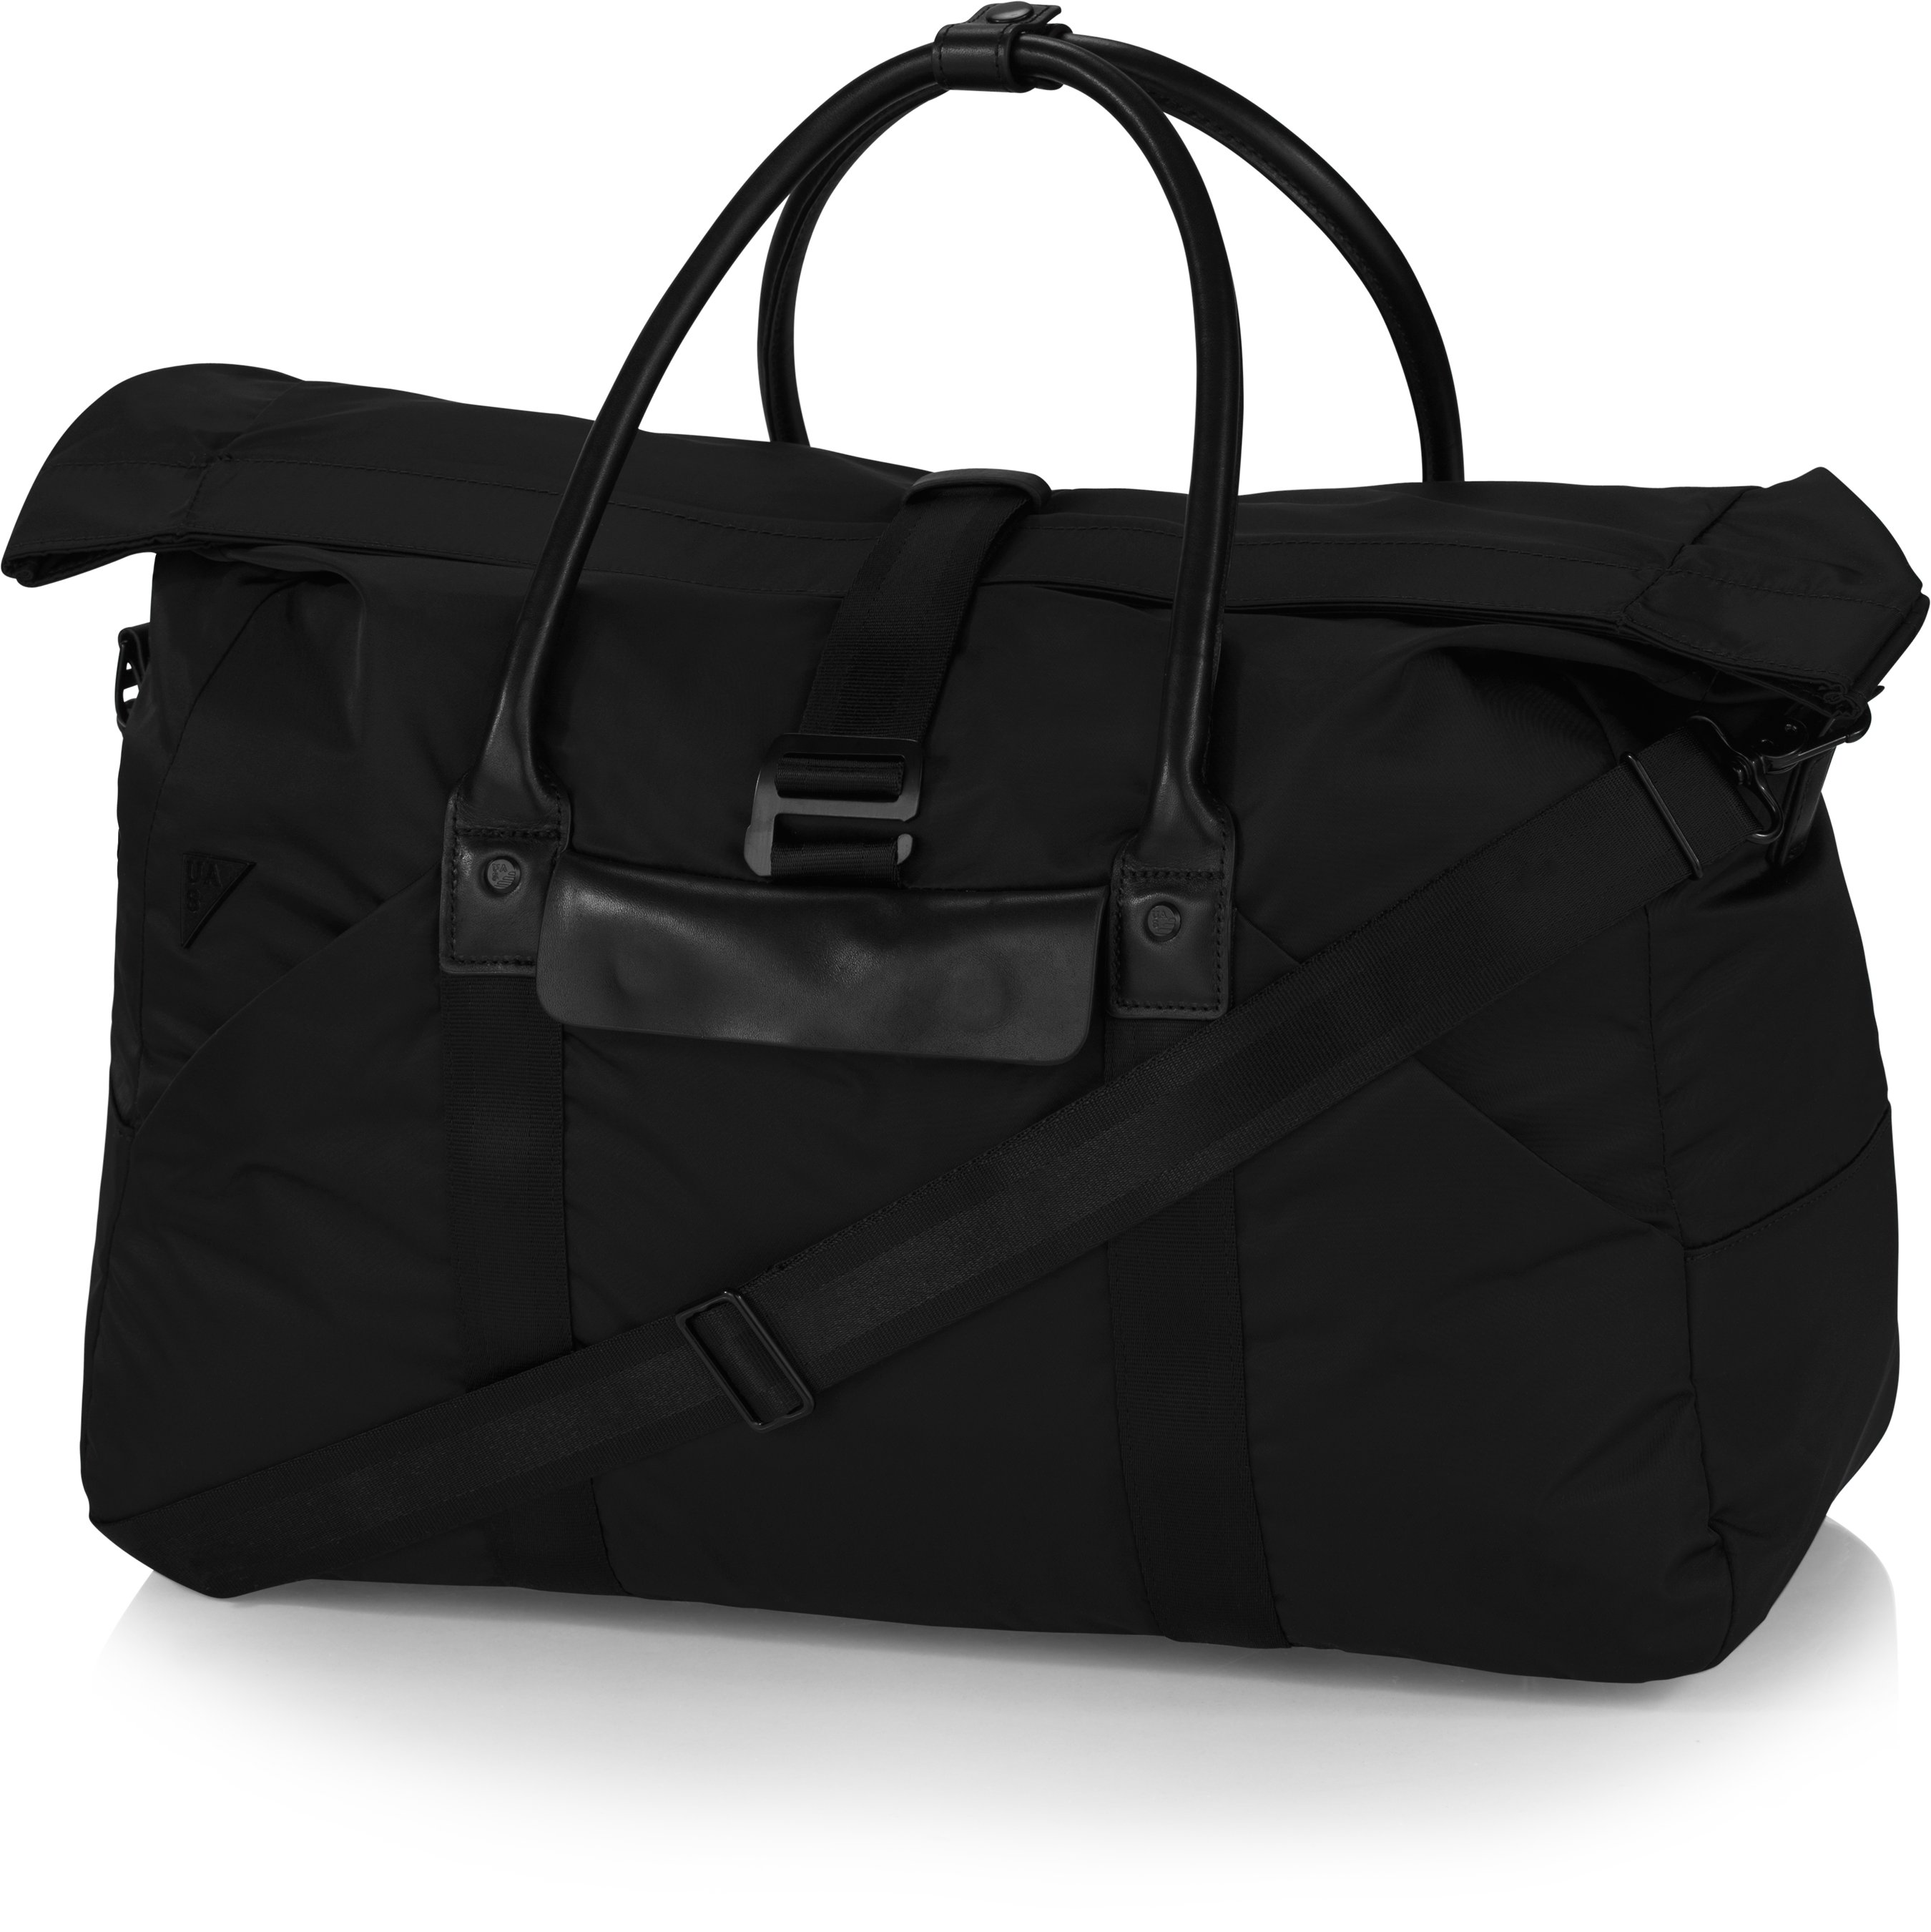 UAS Excursion Overnight Duffle, Black